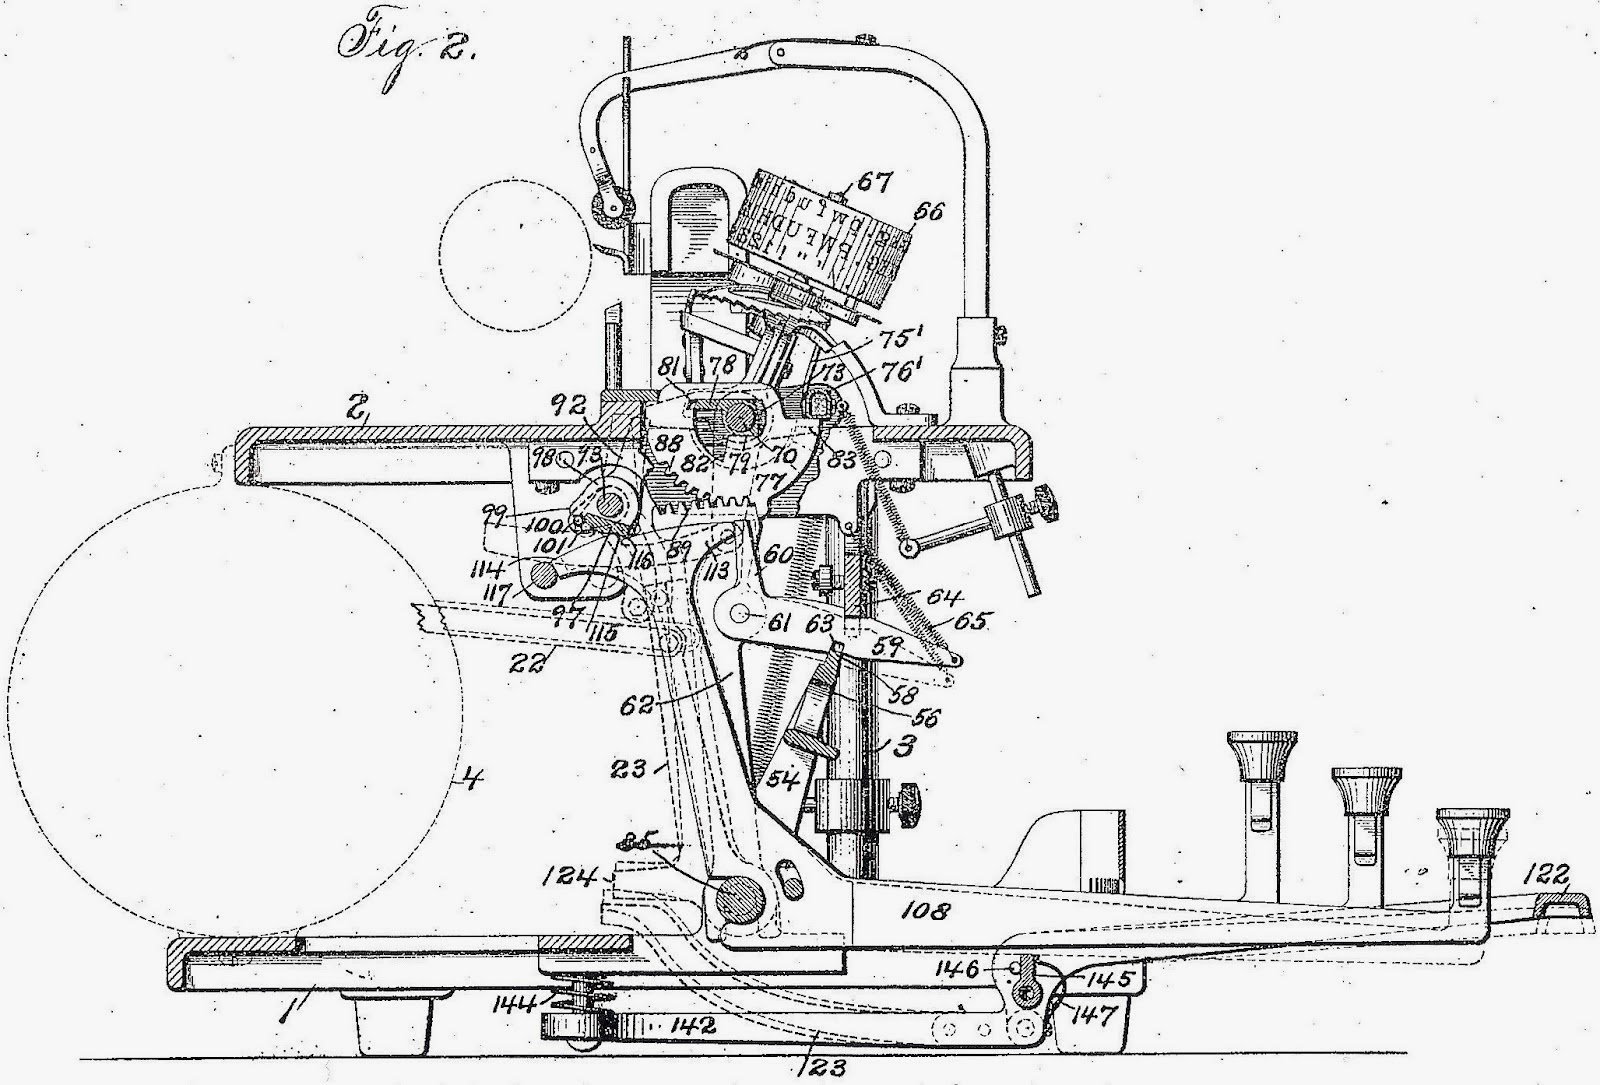 oz typewriter 2014 this electric blickensderfer patent schematic will be used by theatre students at duke university durham north carolina to publicise s staging of